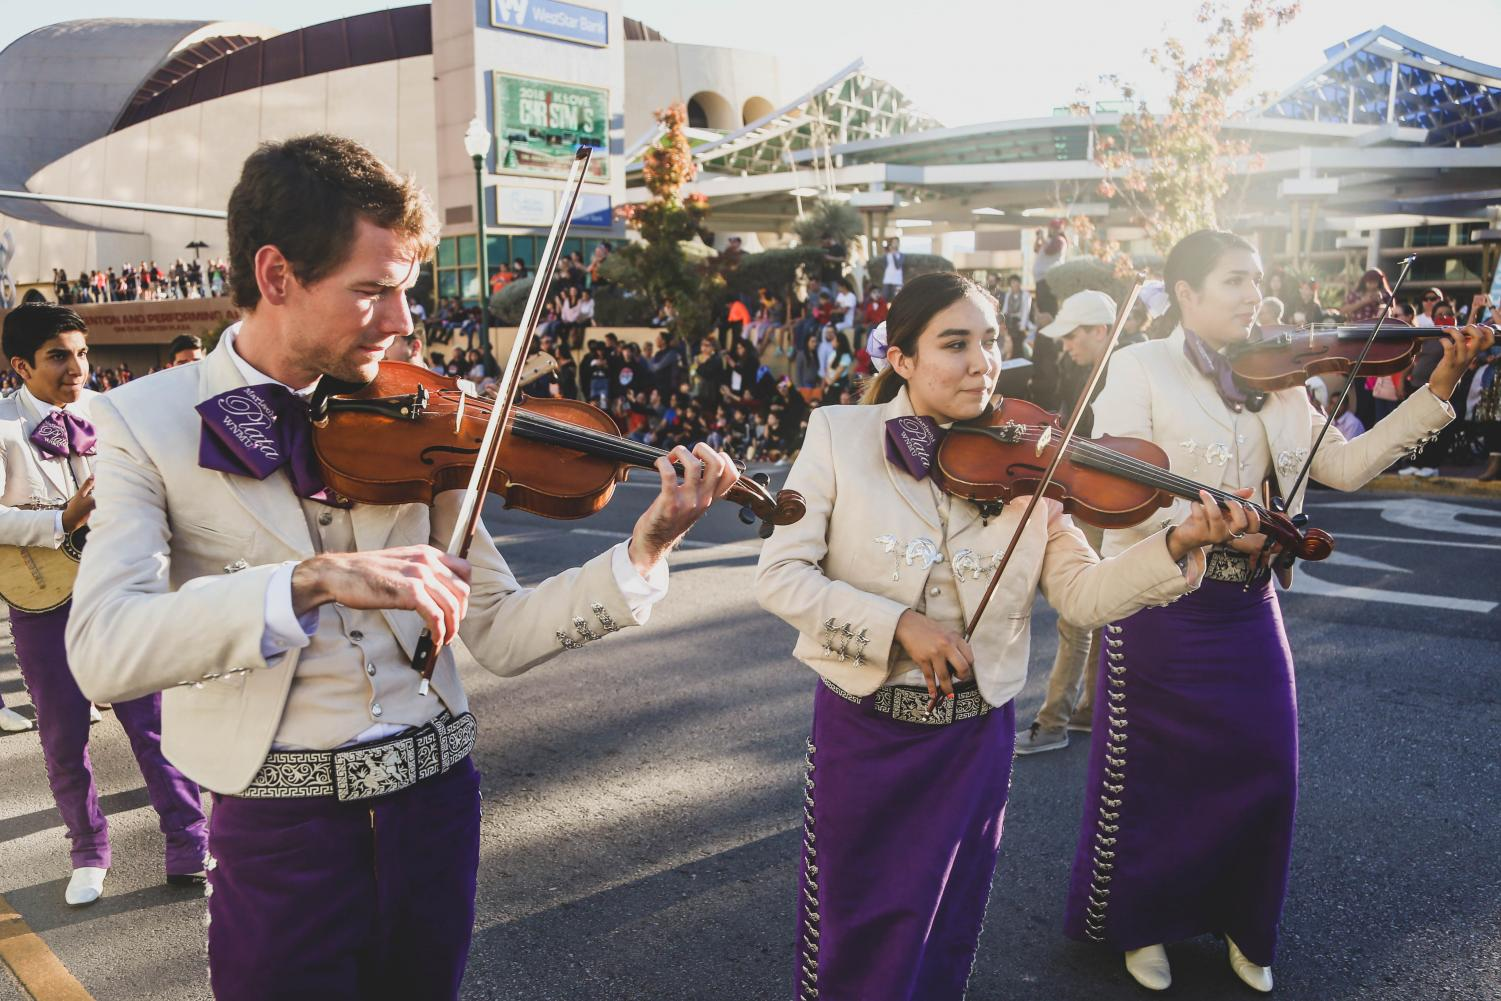 Mariachis+plays+their+instruments+as+they+walk+through+the+parade.+